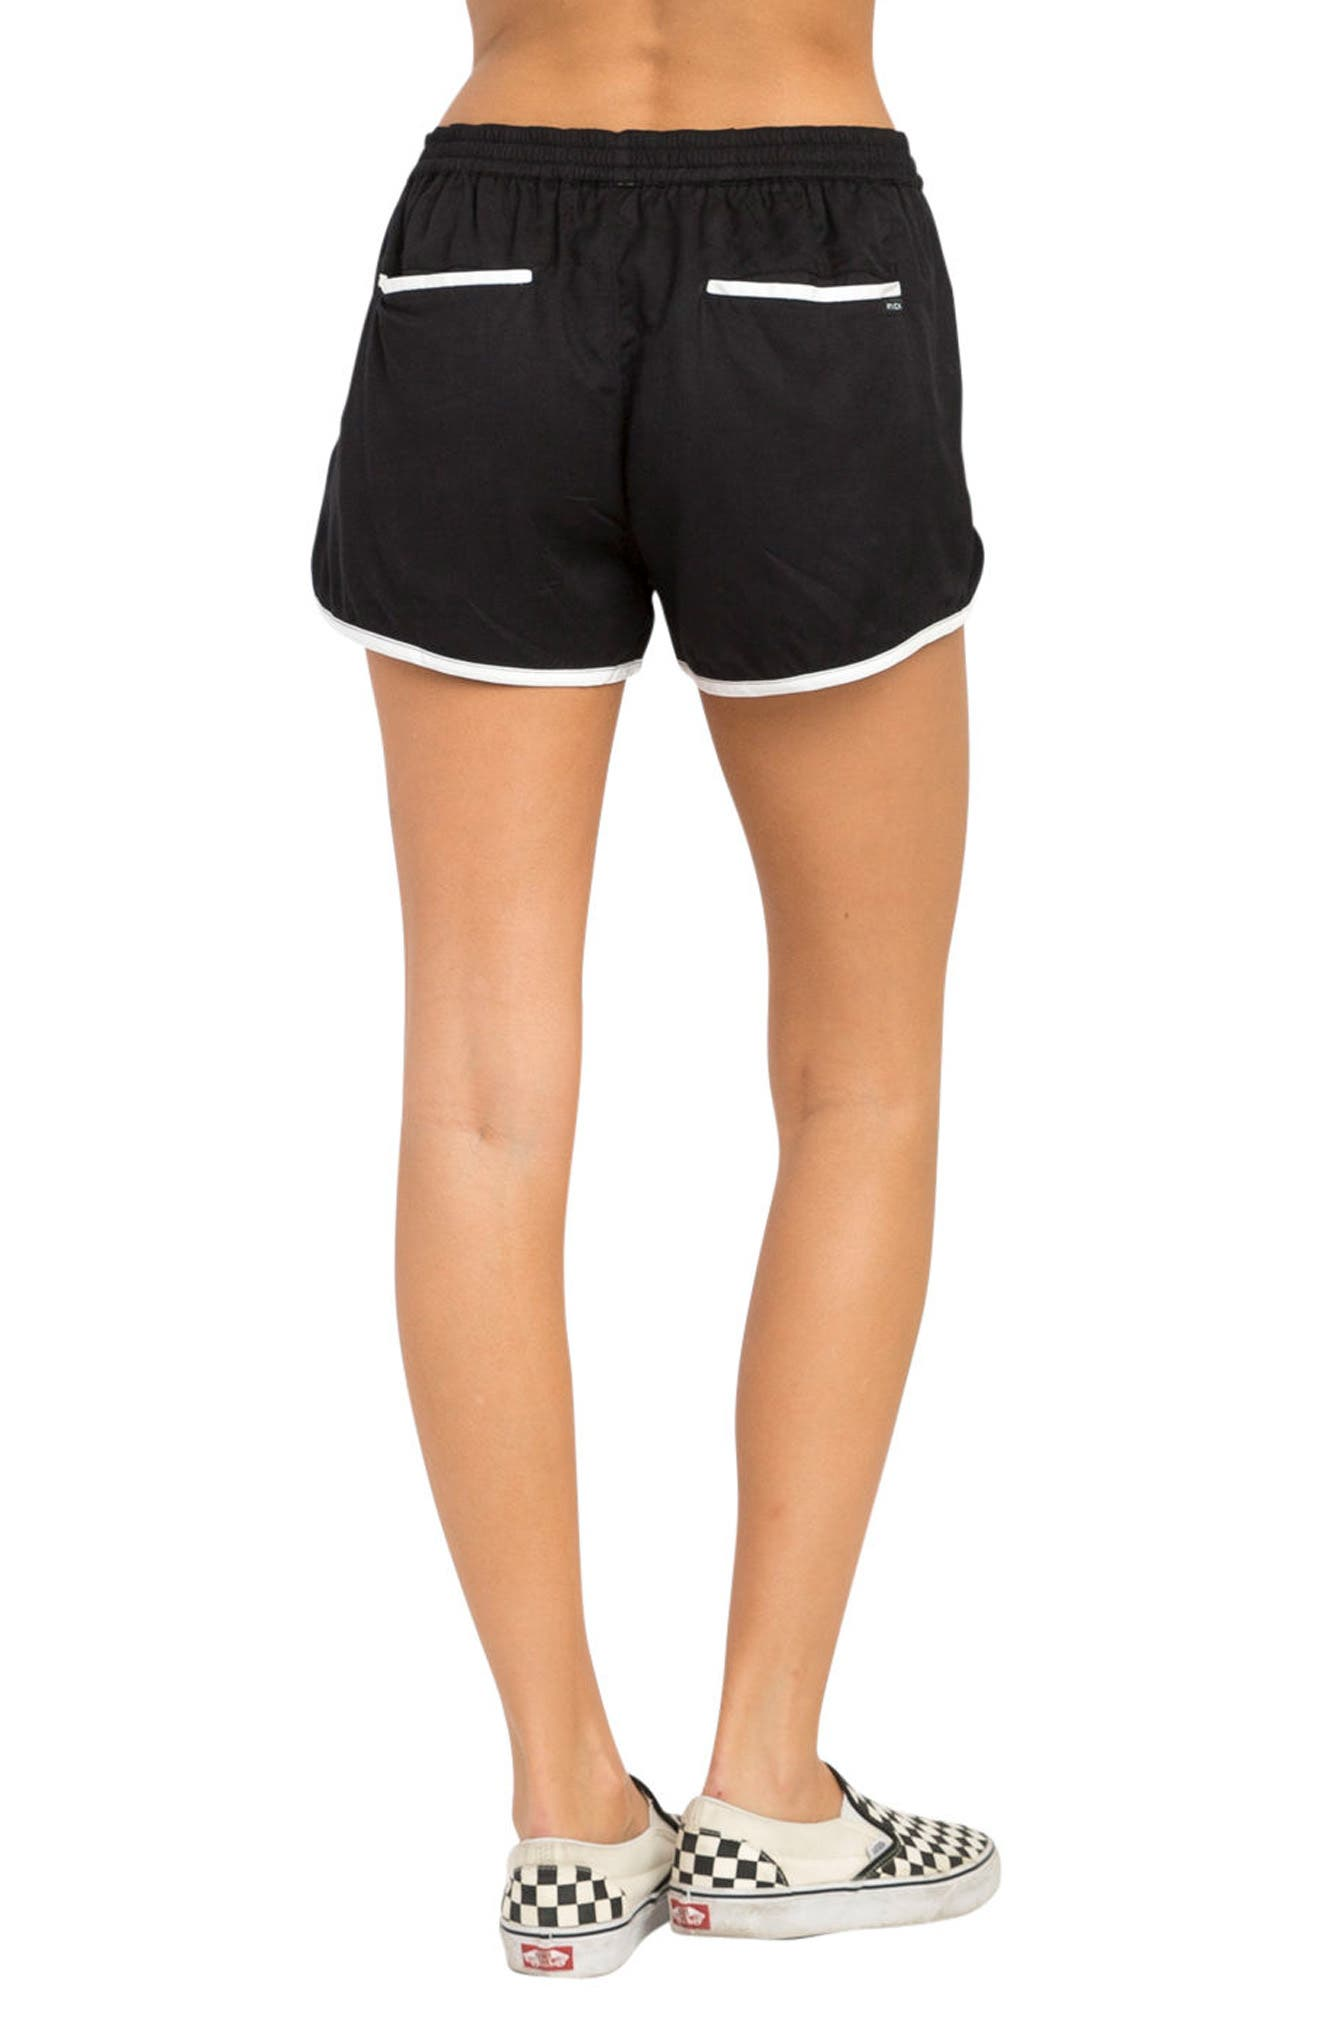 Cruising Dolphin Shorts,                             Alternate thumbnail 3, color,                             Black